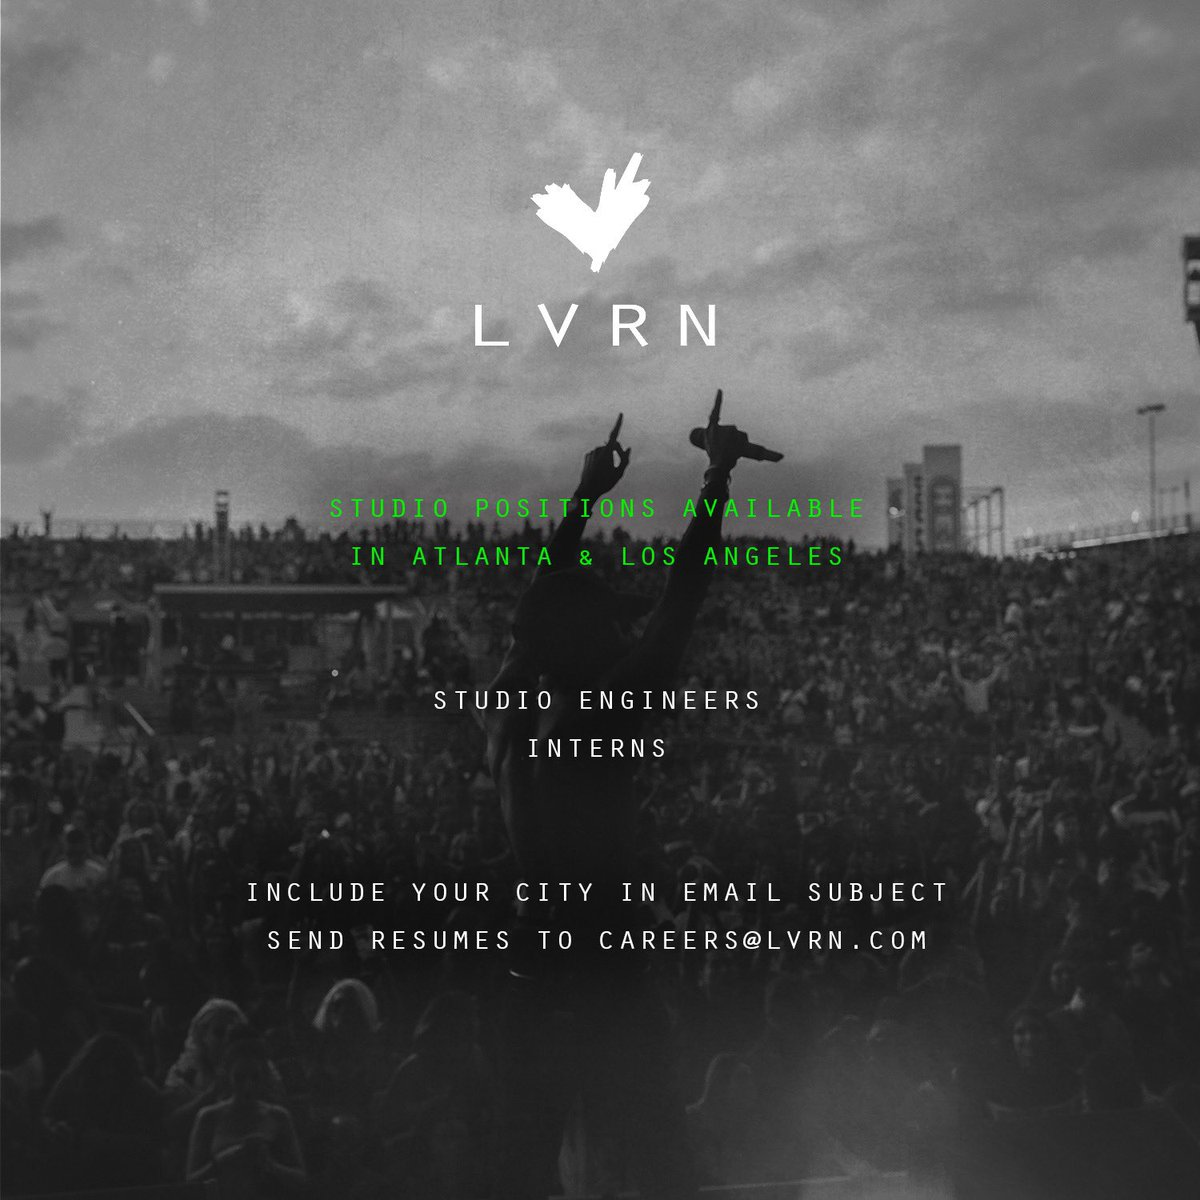 Atlanta & LA 🗣 we have Studio Positions available!! Send Resumés and Cover letters to Careers@lvrn.com ✍🏿 Please include your city in the subject of the email 🤍